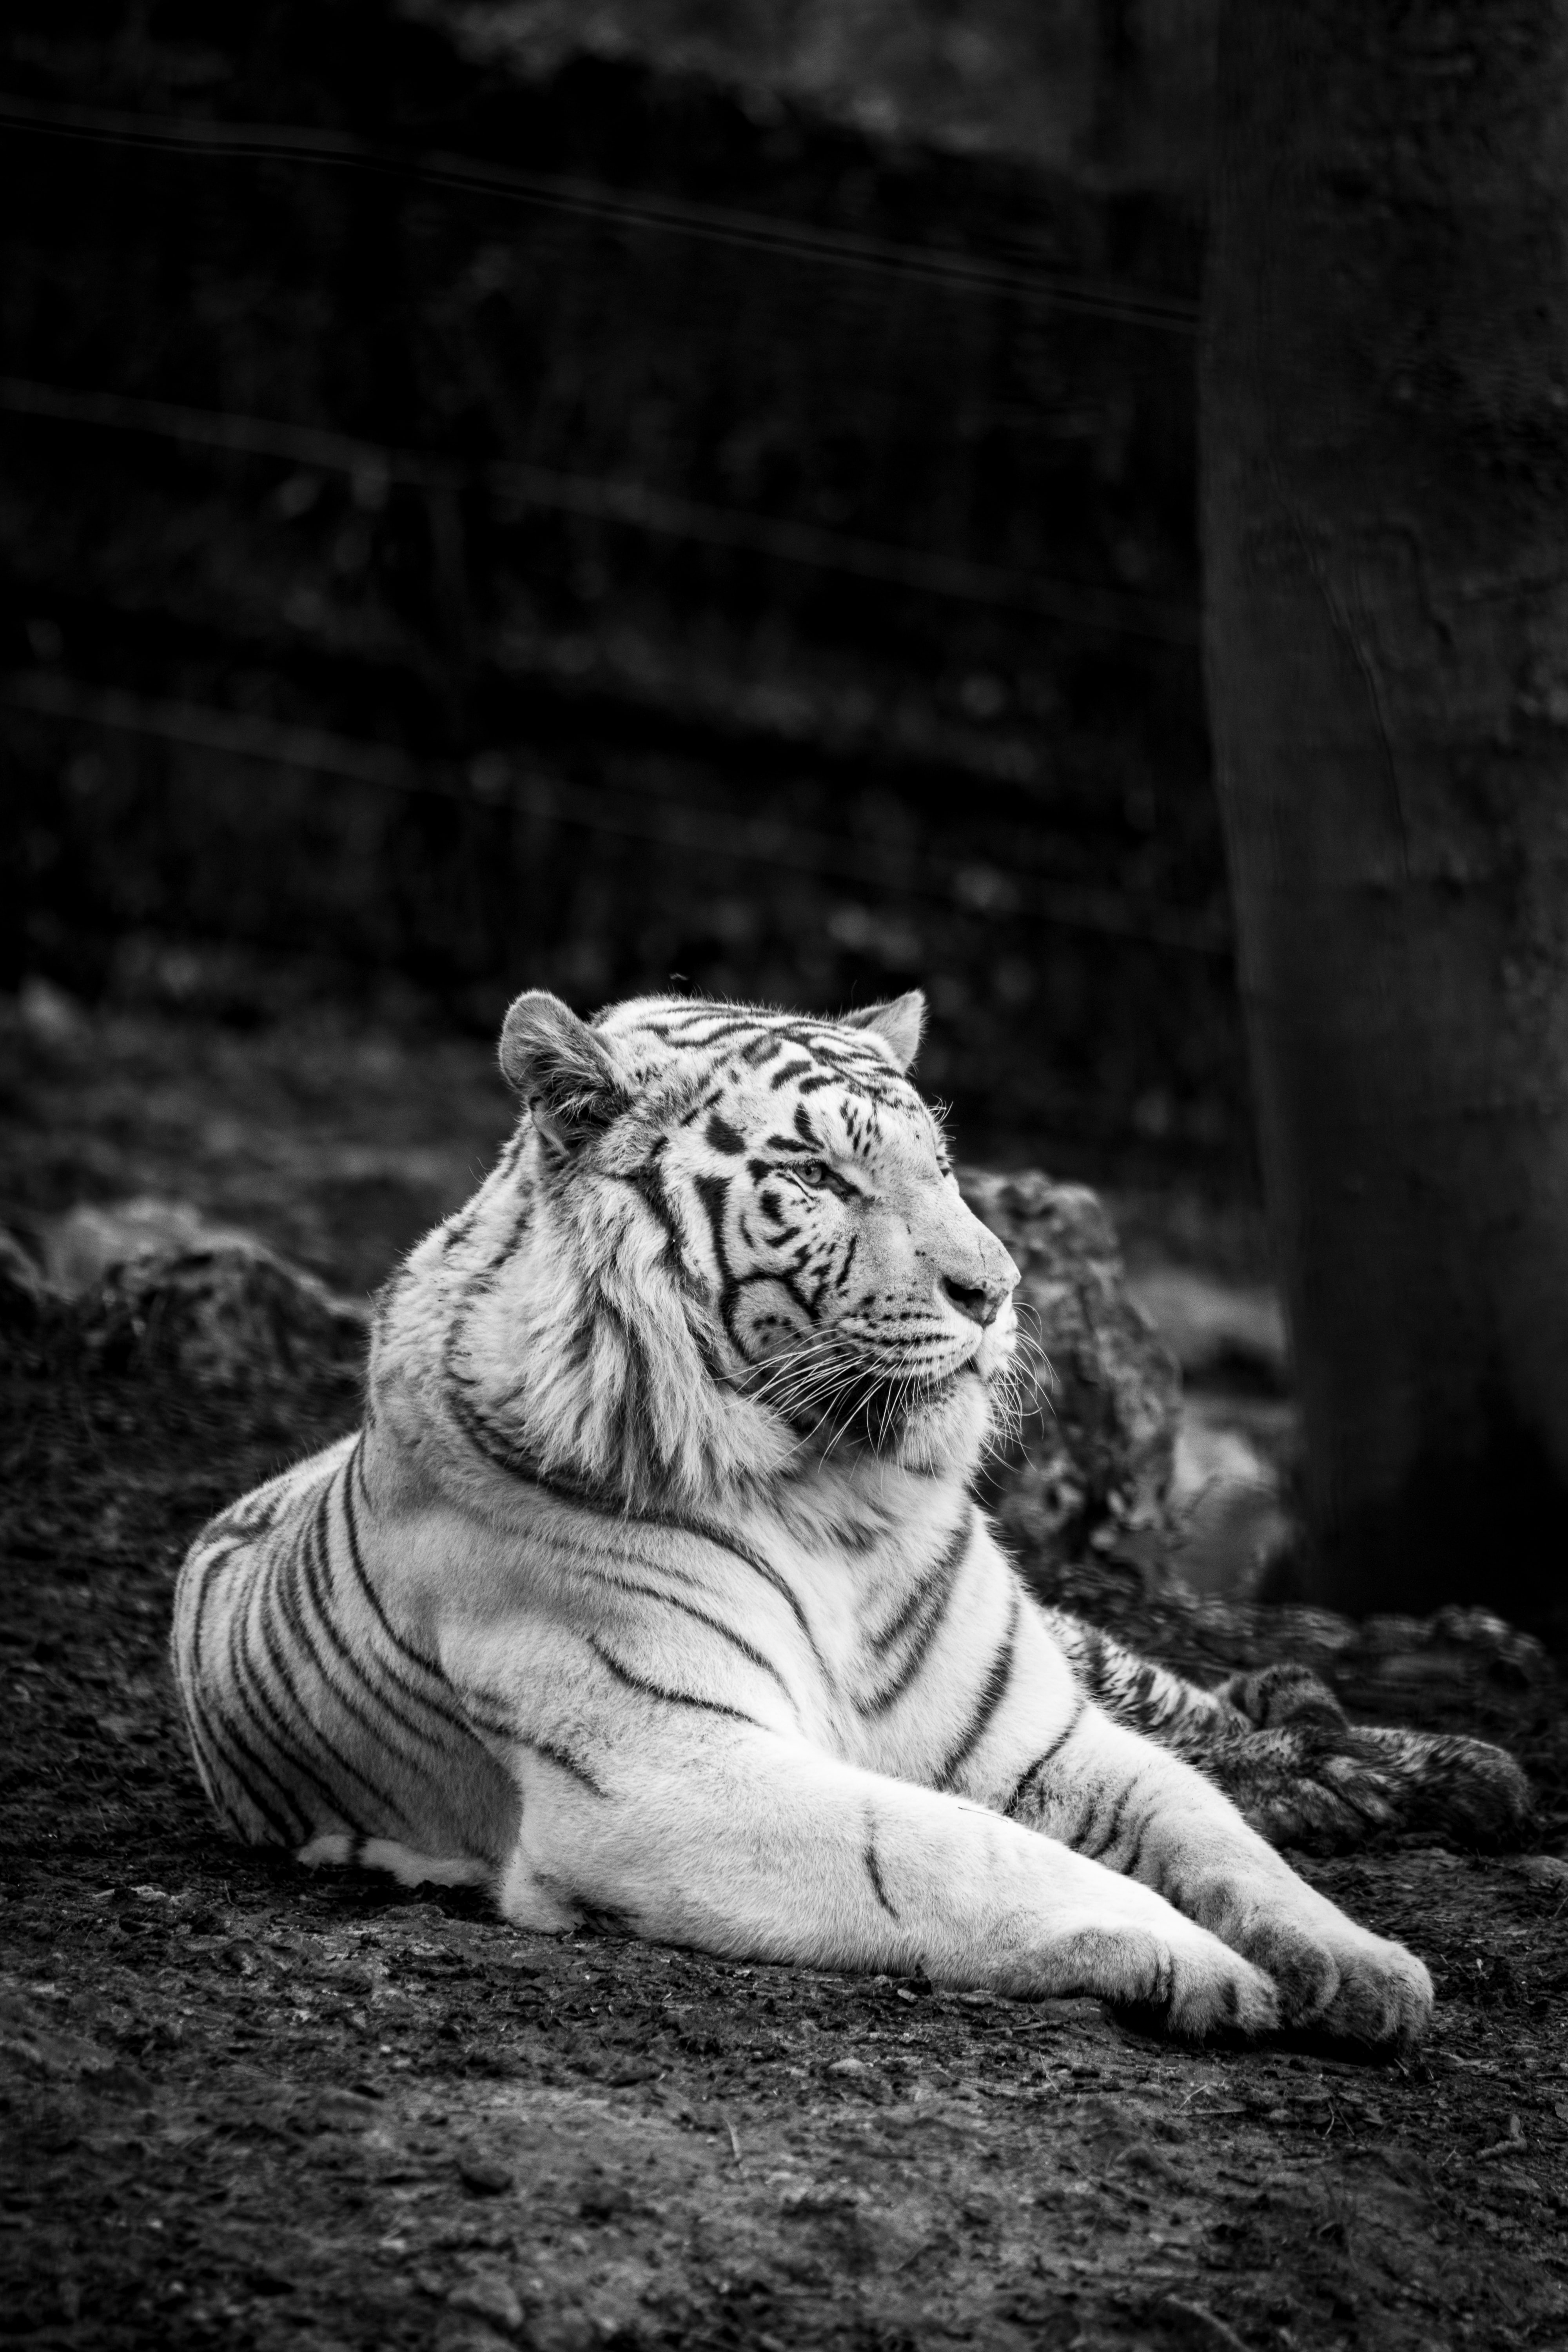 94853 download wallpaper Animals, Bengal Tiger, Tiger, Bw, Chb, Predator screensavers and pictures for free